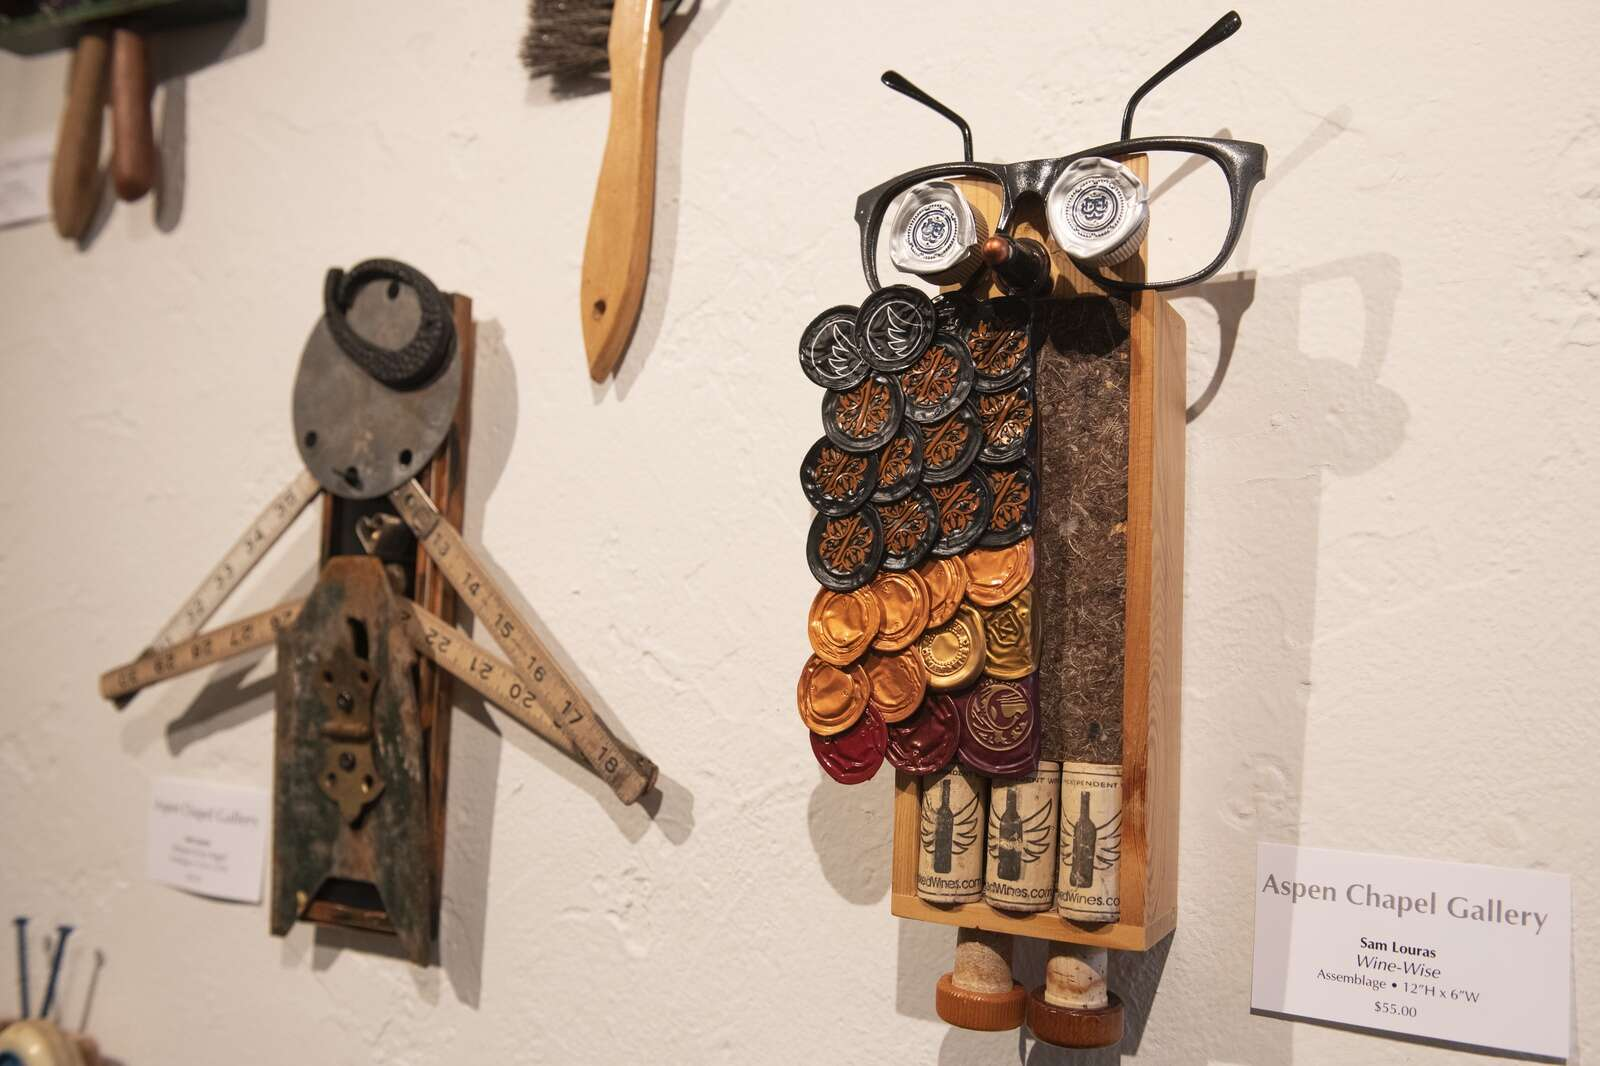 Pieces by Sam Louras are displayed in the Aspen Chapel Gallery for the Small Wonders holiday show and sale on Tuesday, Nov. 17, 2020. (Kelsey Brunner/The Aspen Times)